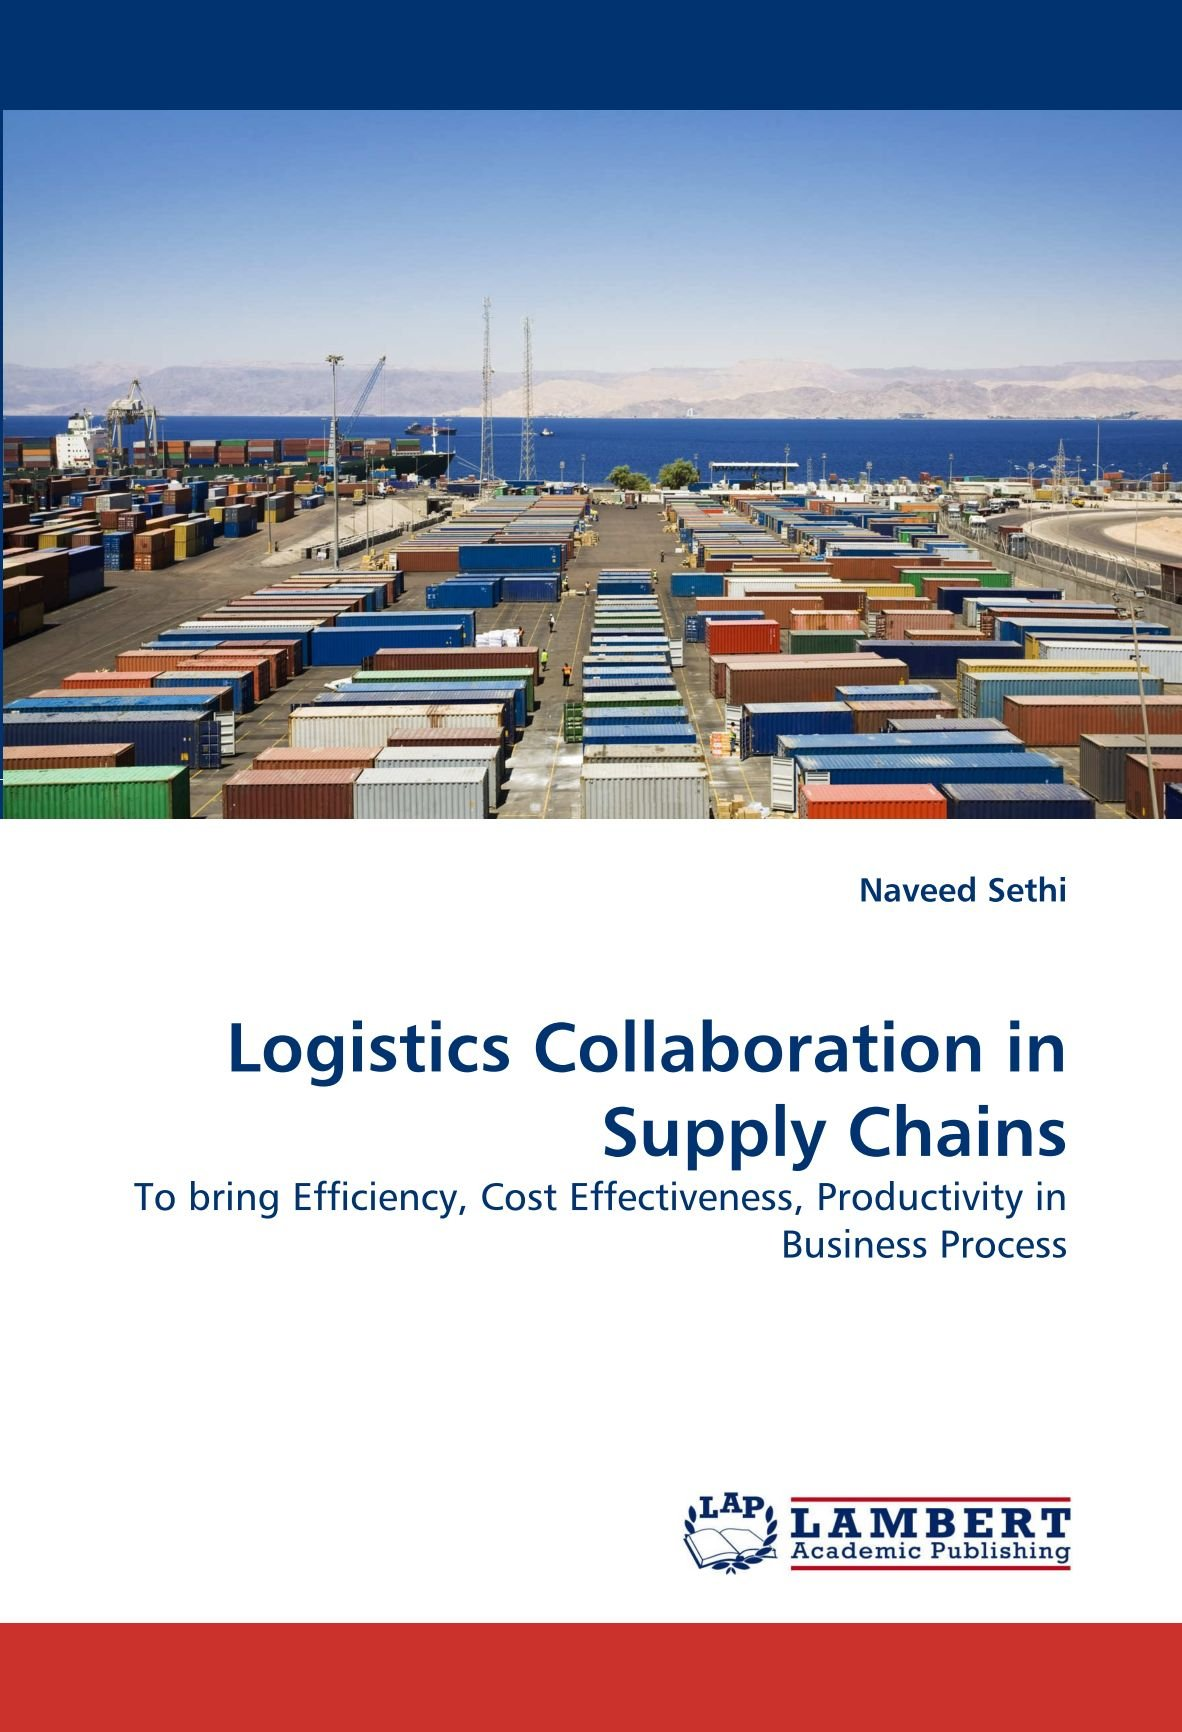 Logistics Collaboration in Supply Chains: To bring Efficiency, Cost Effectiveness, Productivity in Business Process ebook